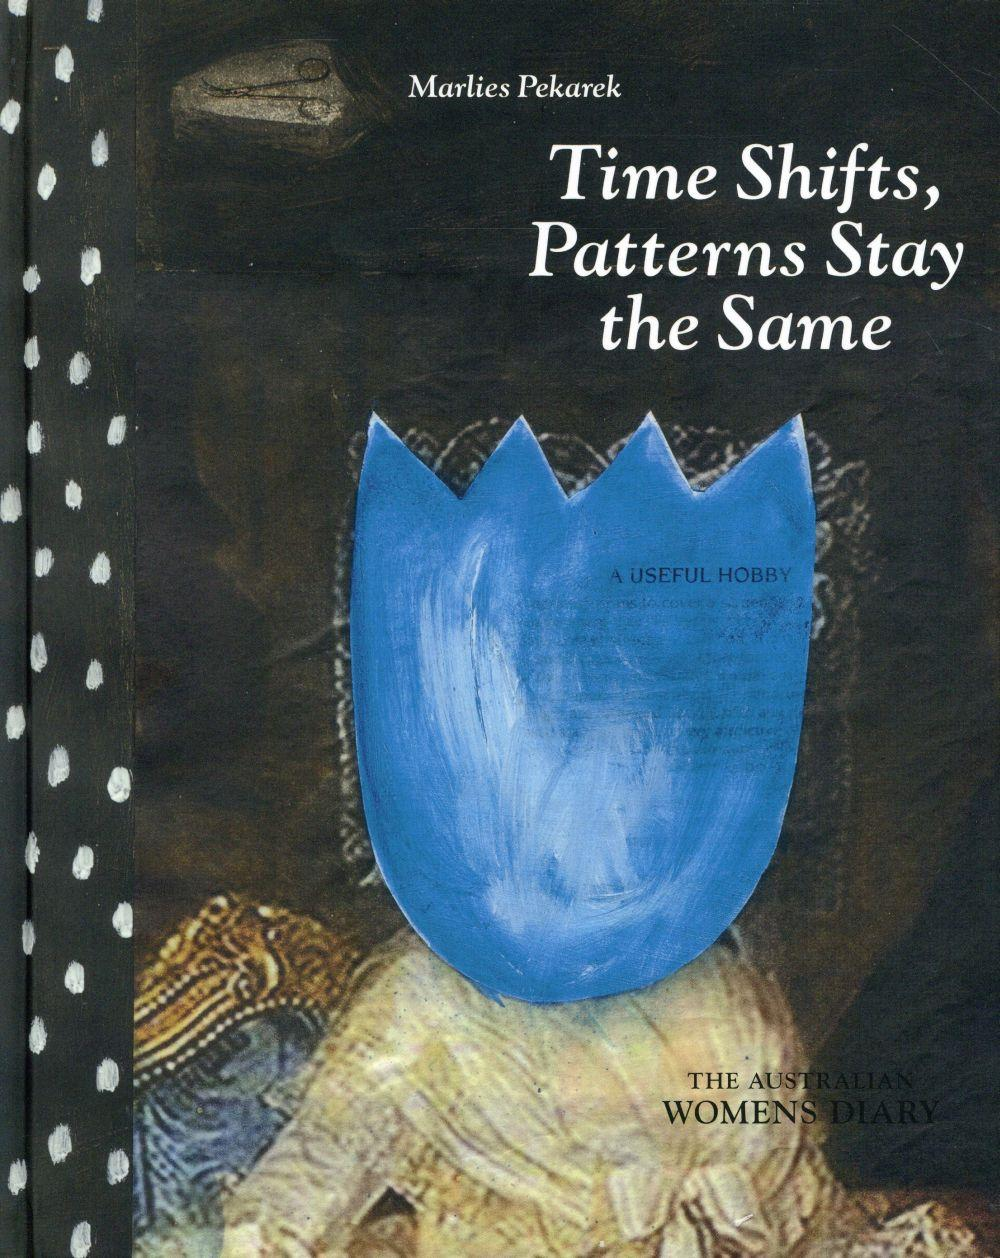 Time shifts patterns stay the same ; the Australian womens diary  - Marlies Pekarek